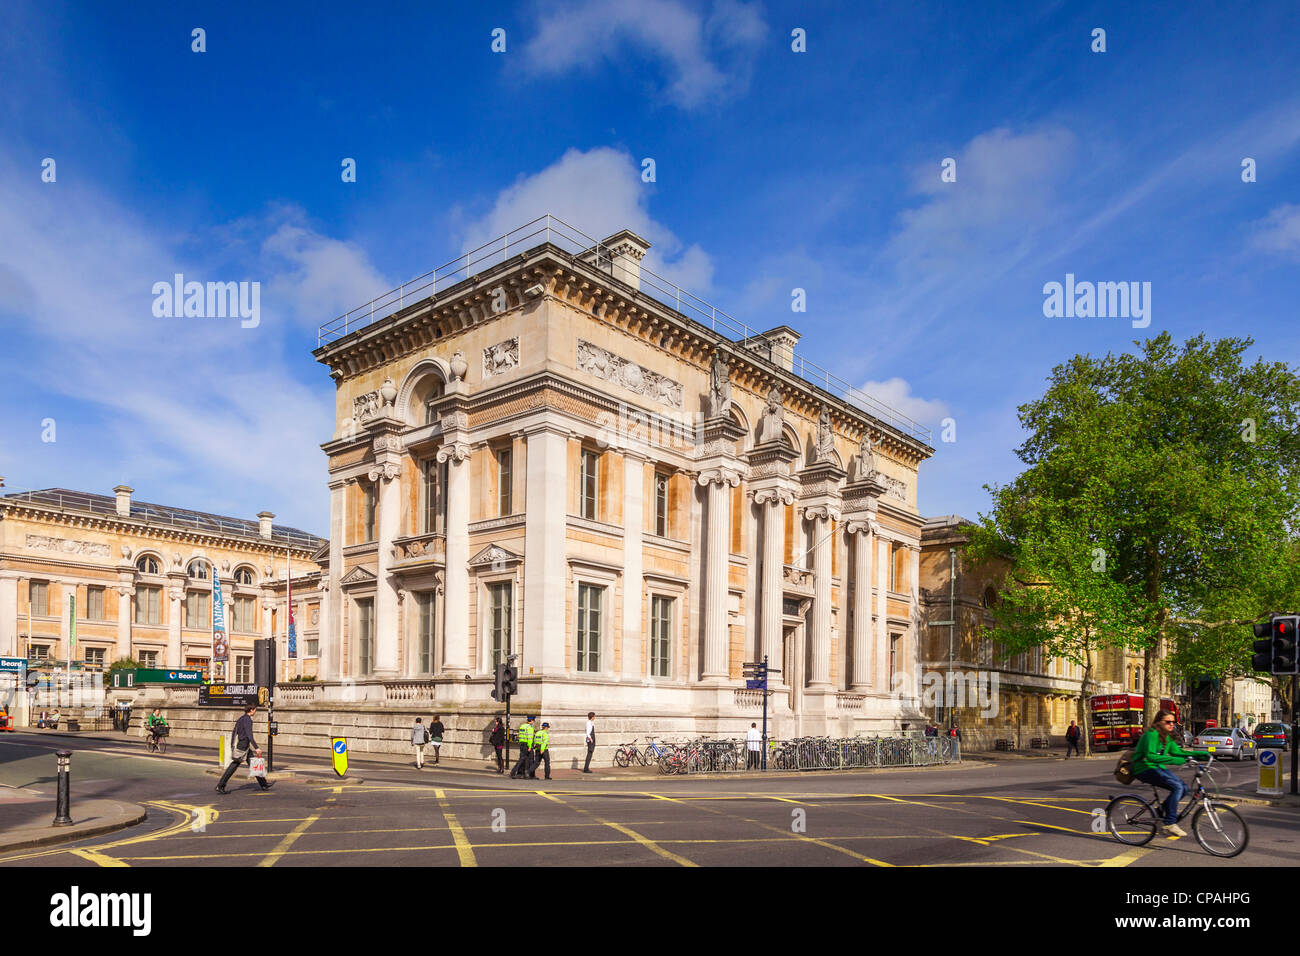 The Ashmolean Museum in Oxford, which was the world's first University Museum. - Stock Image